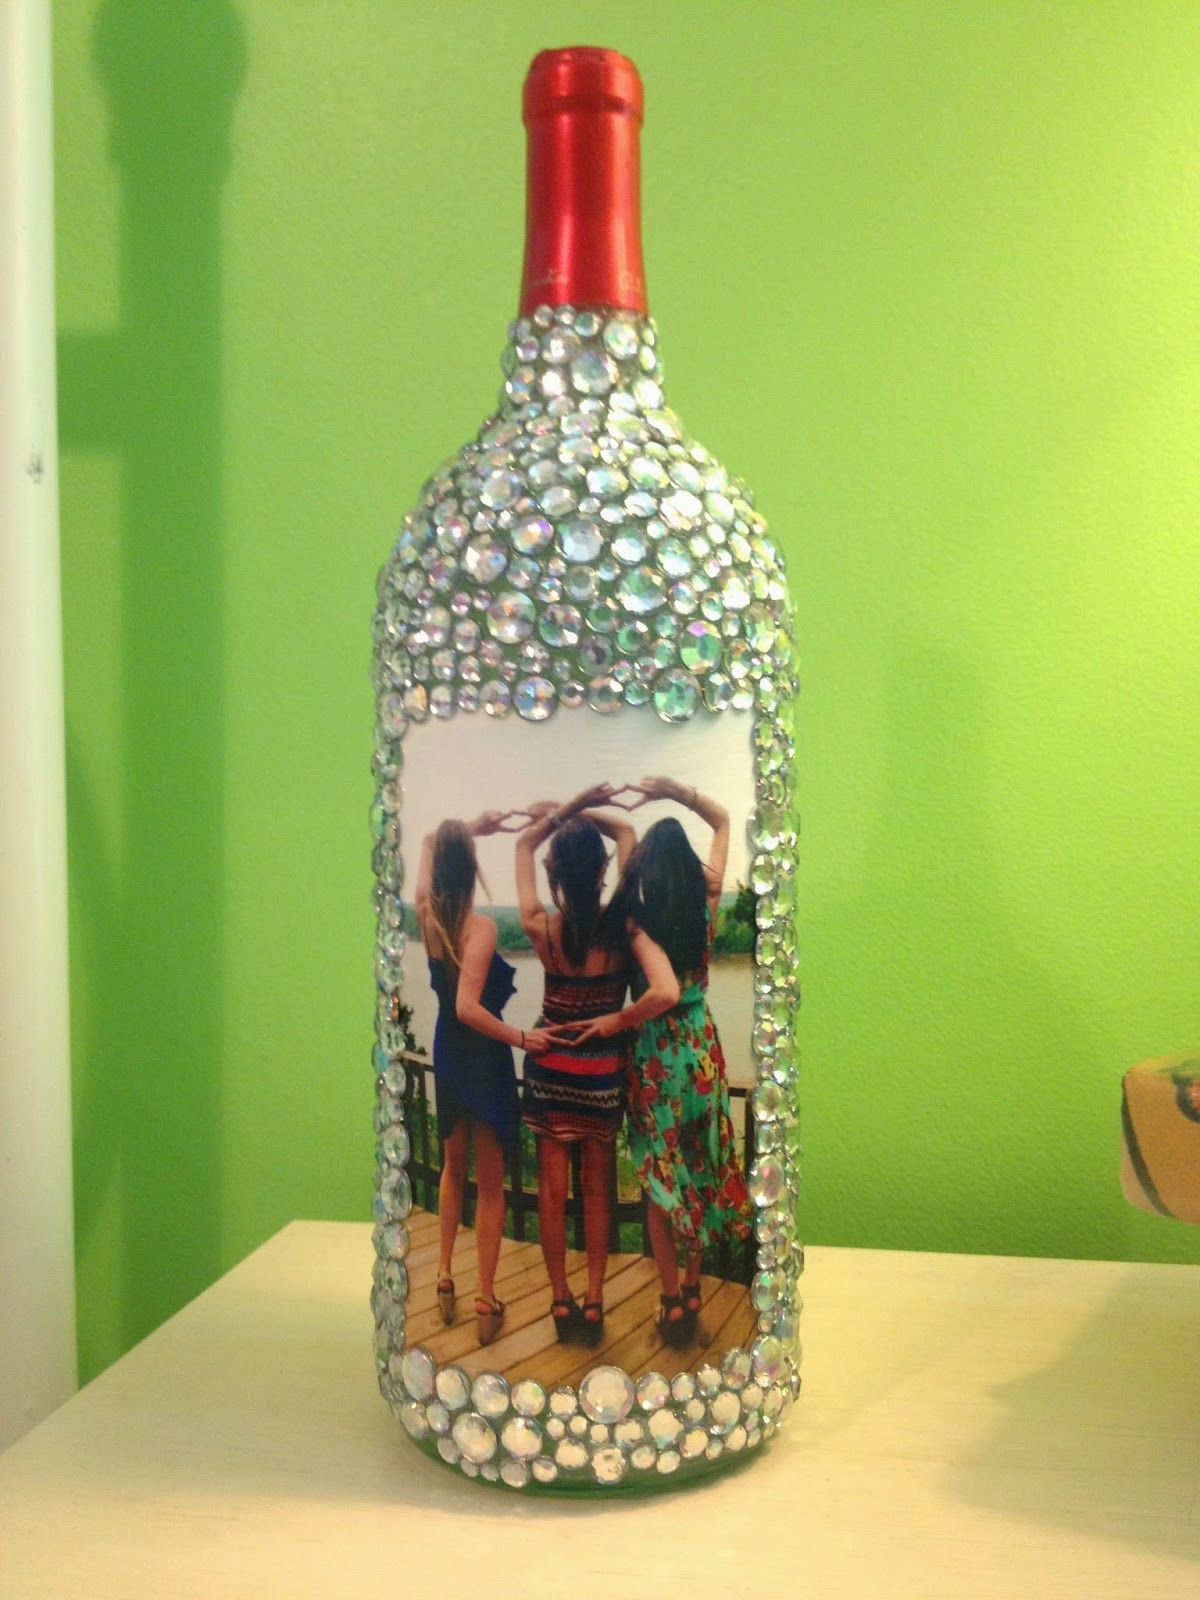 Arts And Crafts With Empty Wine Bottles